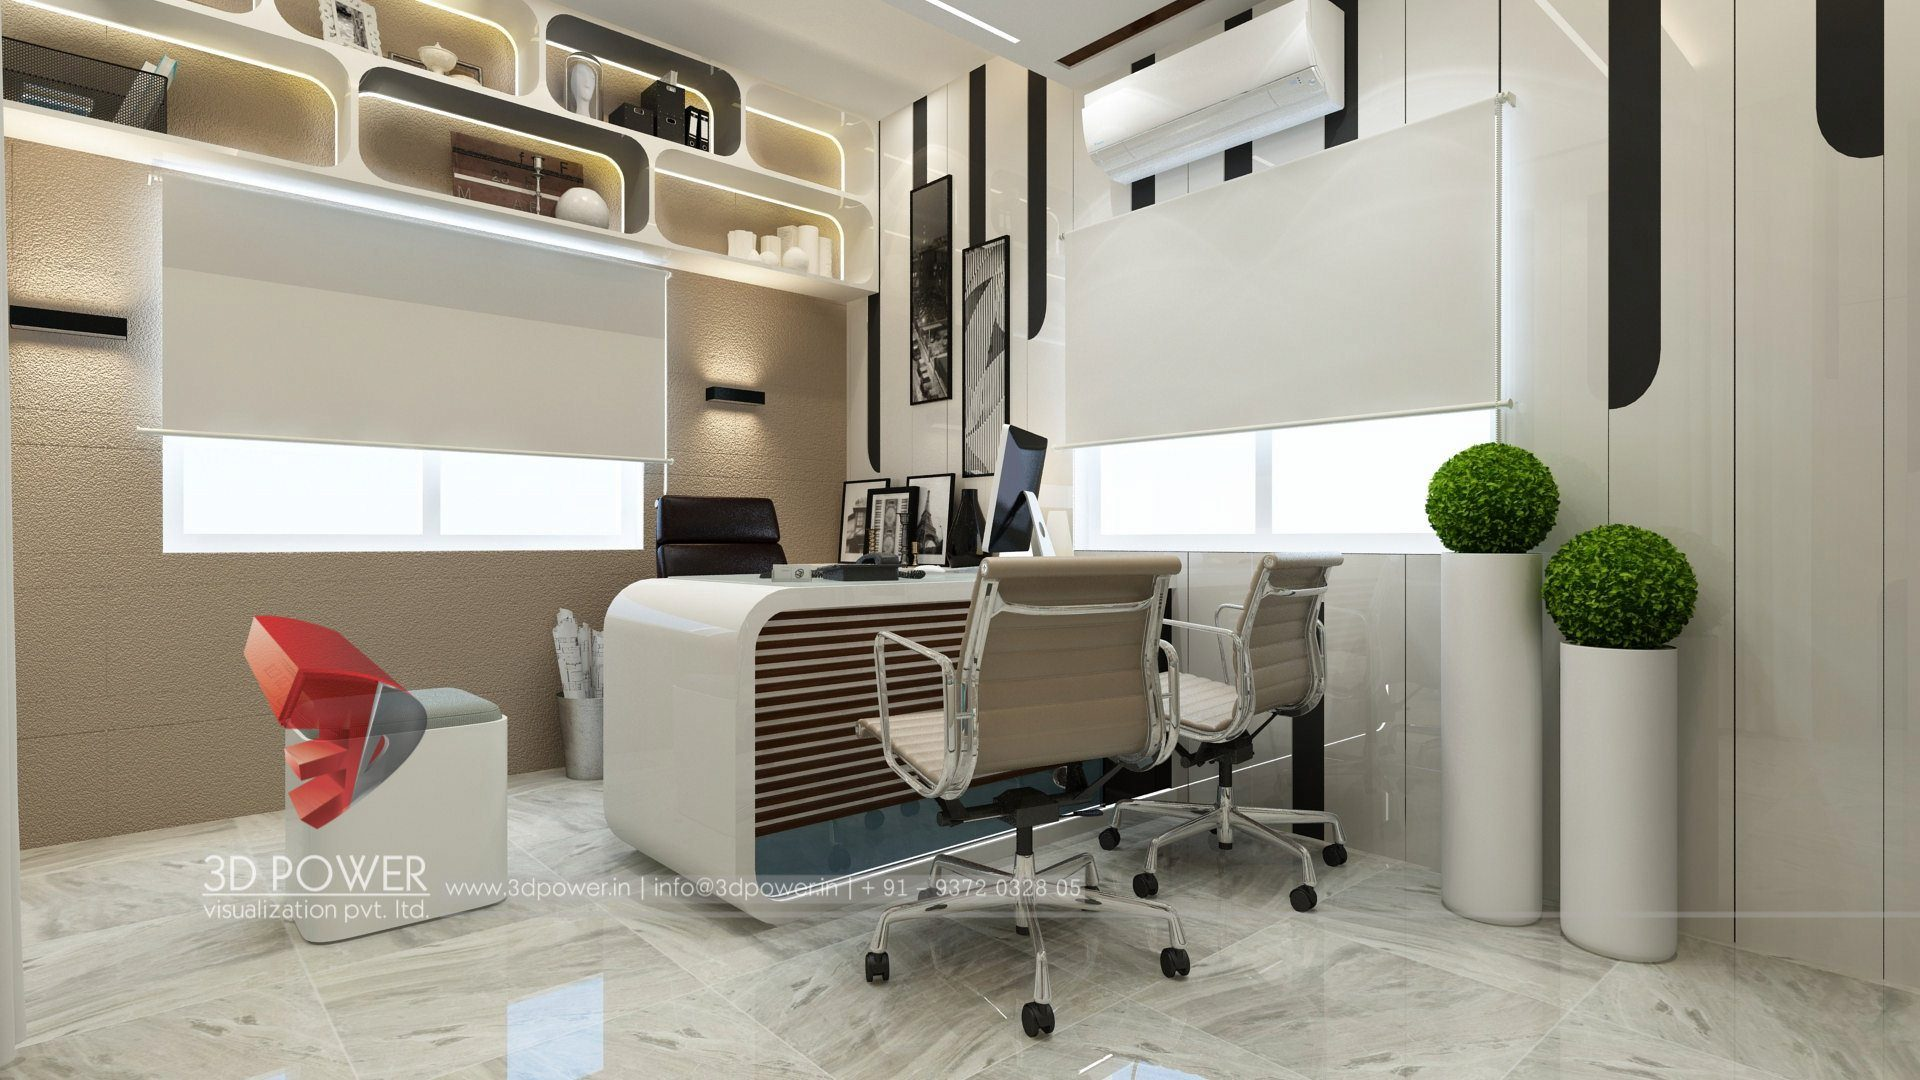 Rendering services office interior design